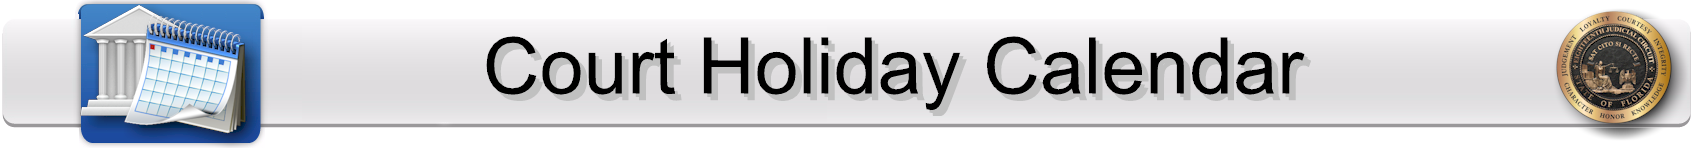 Court Holiday Calendar Page Banner